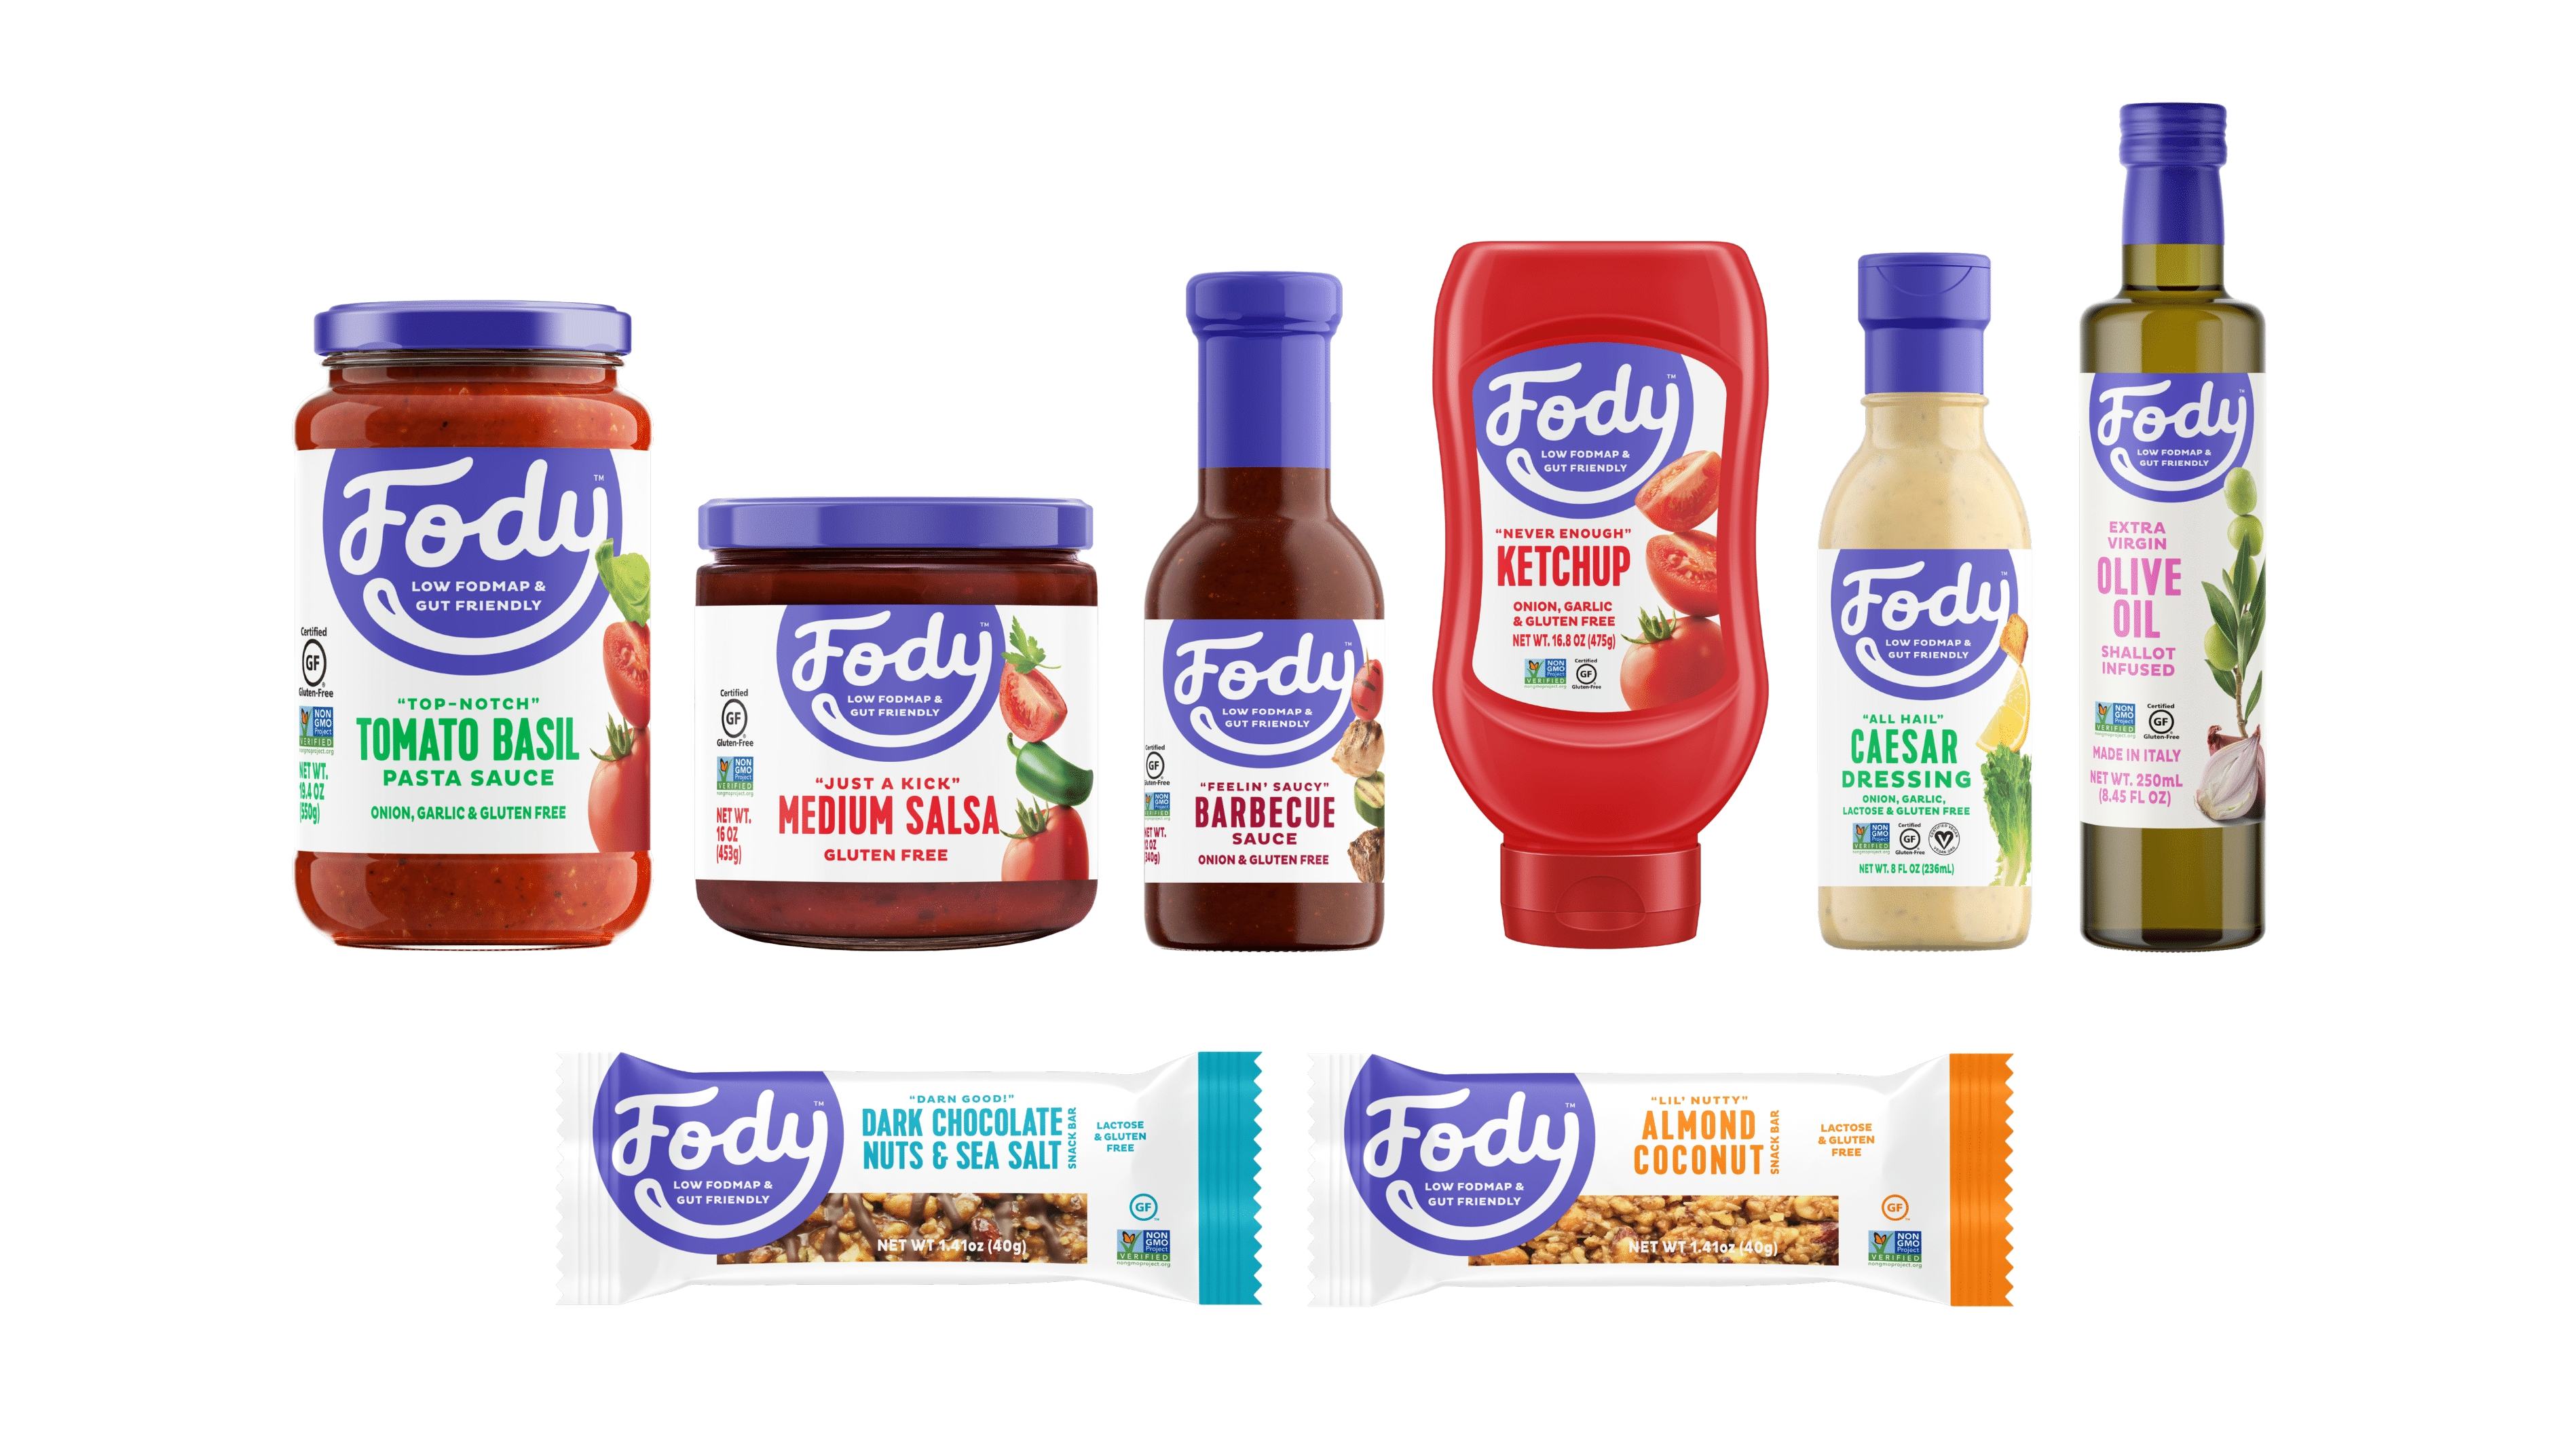 fody food foods gut functional friendly supplements sprouts november sauces dieting trend snacks arrives easy companies know need market introduced